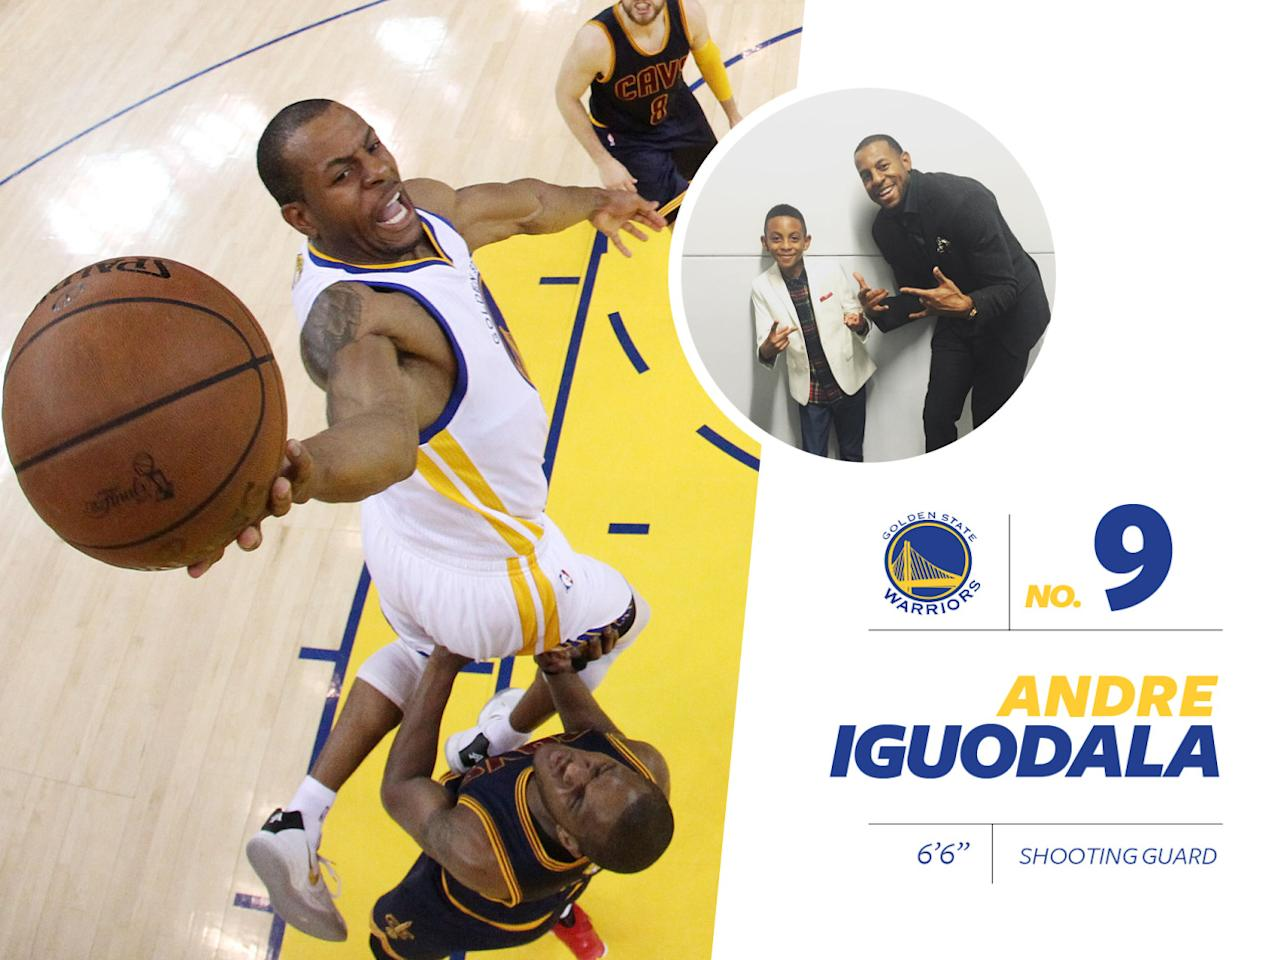 "<p>Warriors' player Andre Iguodala has one of the most fashion-forward Instagram accounts, where he's often seen with his son (also named Andre) in <a href=""https://www.instagram.com/p/9X1_q_FQKm/?taken-by=andre&hl=en"">complementary outfits</a>. The duo are so quintessentially ""GQ"" that it'll blow your mind. <i>Photo: Getty Images / Instagram.com</i></p>"